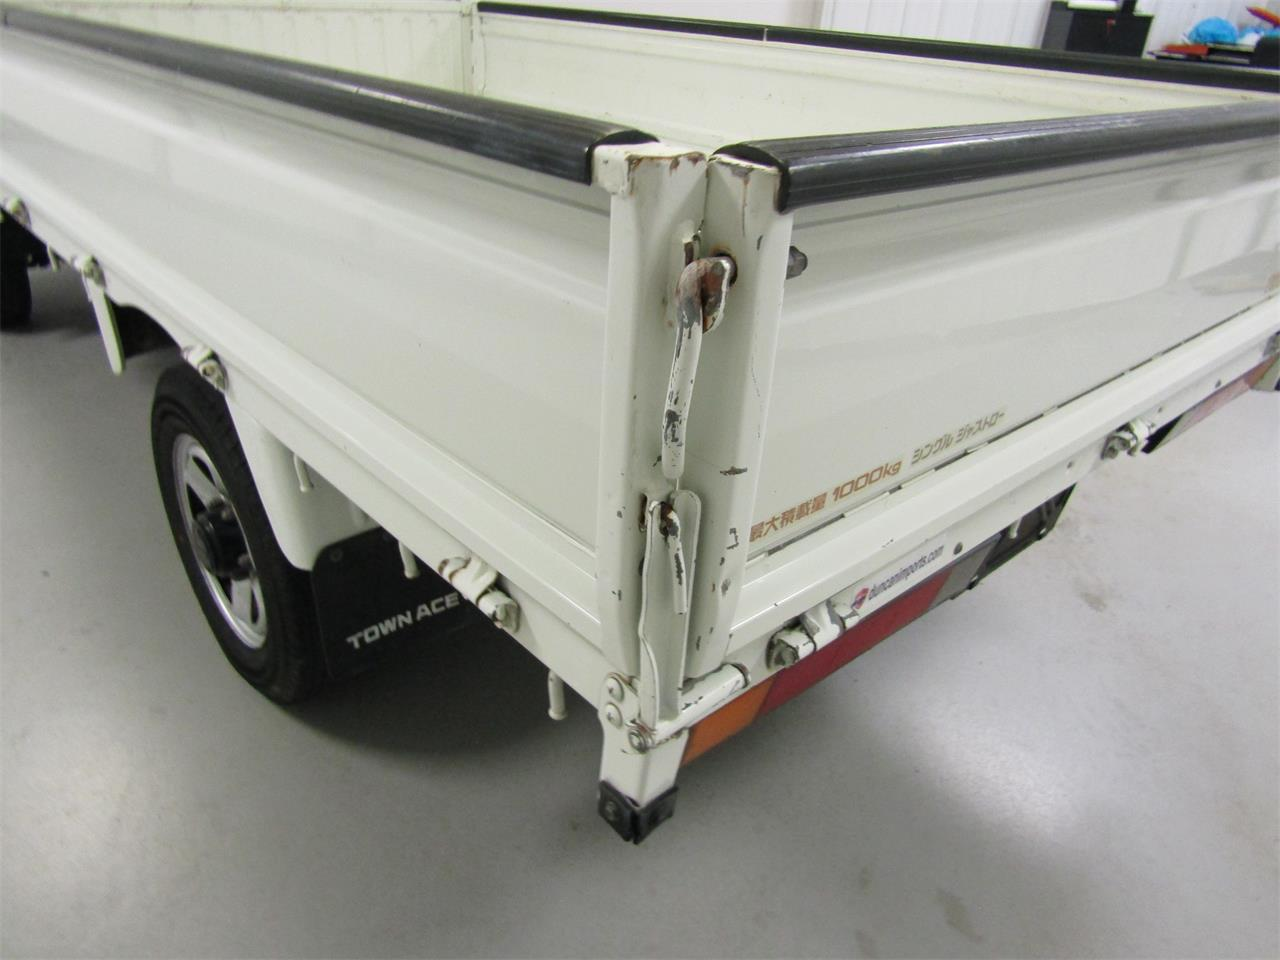 Large Picture of 1989 TownAce located in Virginia Offered by Duncan Imports & Classic Cars - JZ39